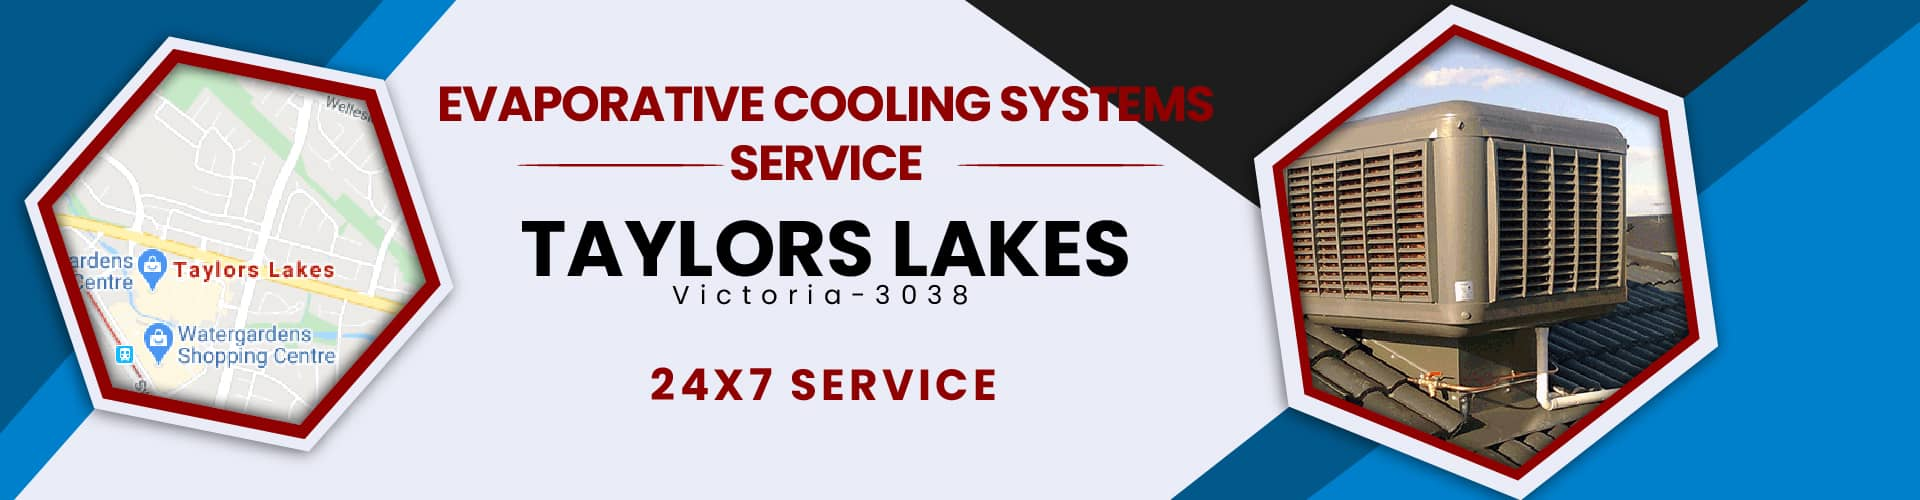 Evaporative Cooling Taylors Lakes